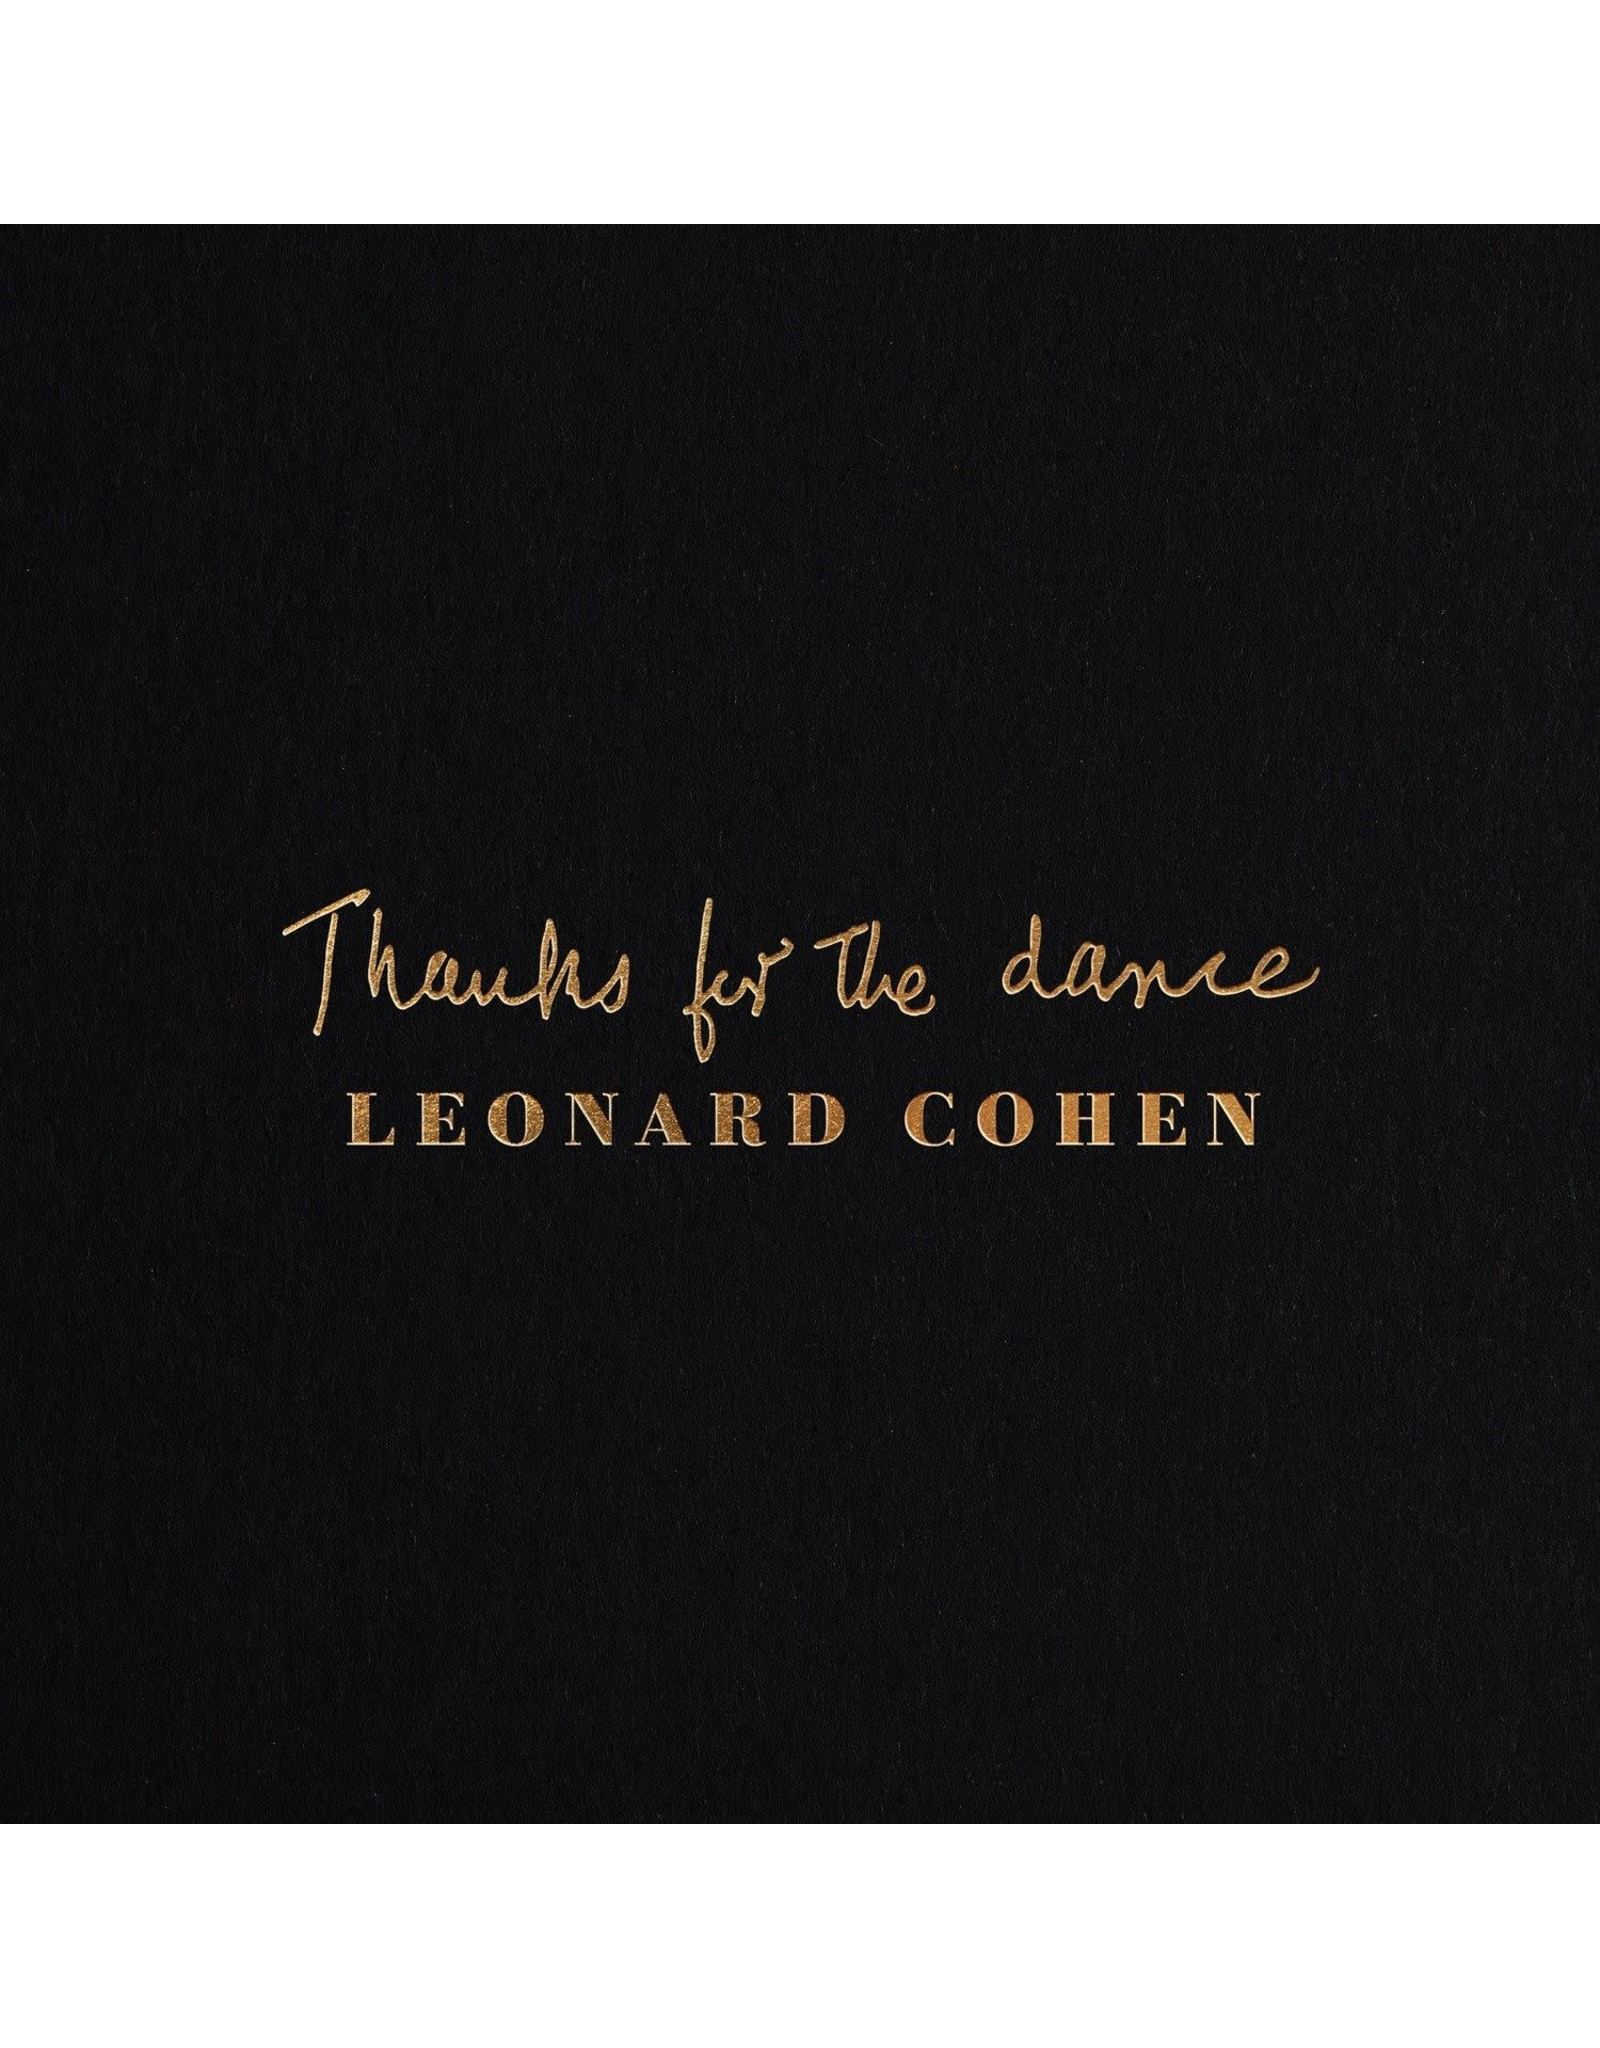 Leonard Cohen - Thanks For The Dance (The Final Sessions)